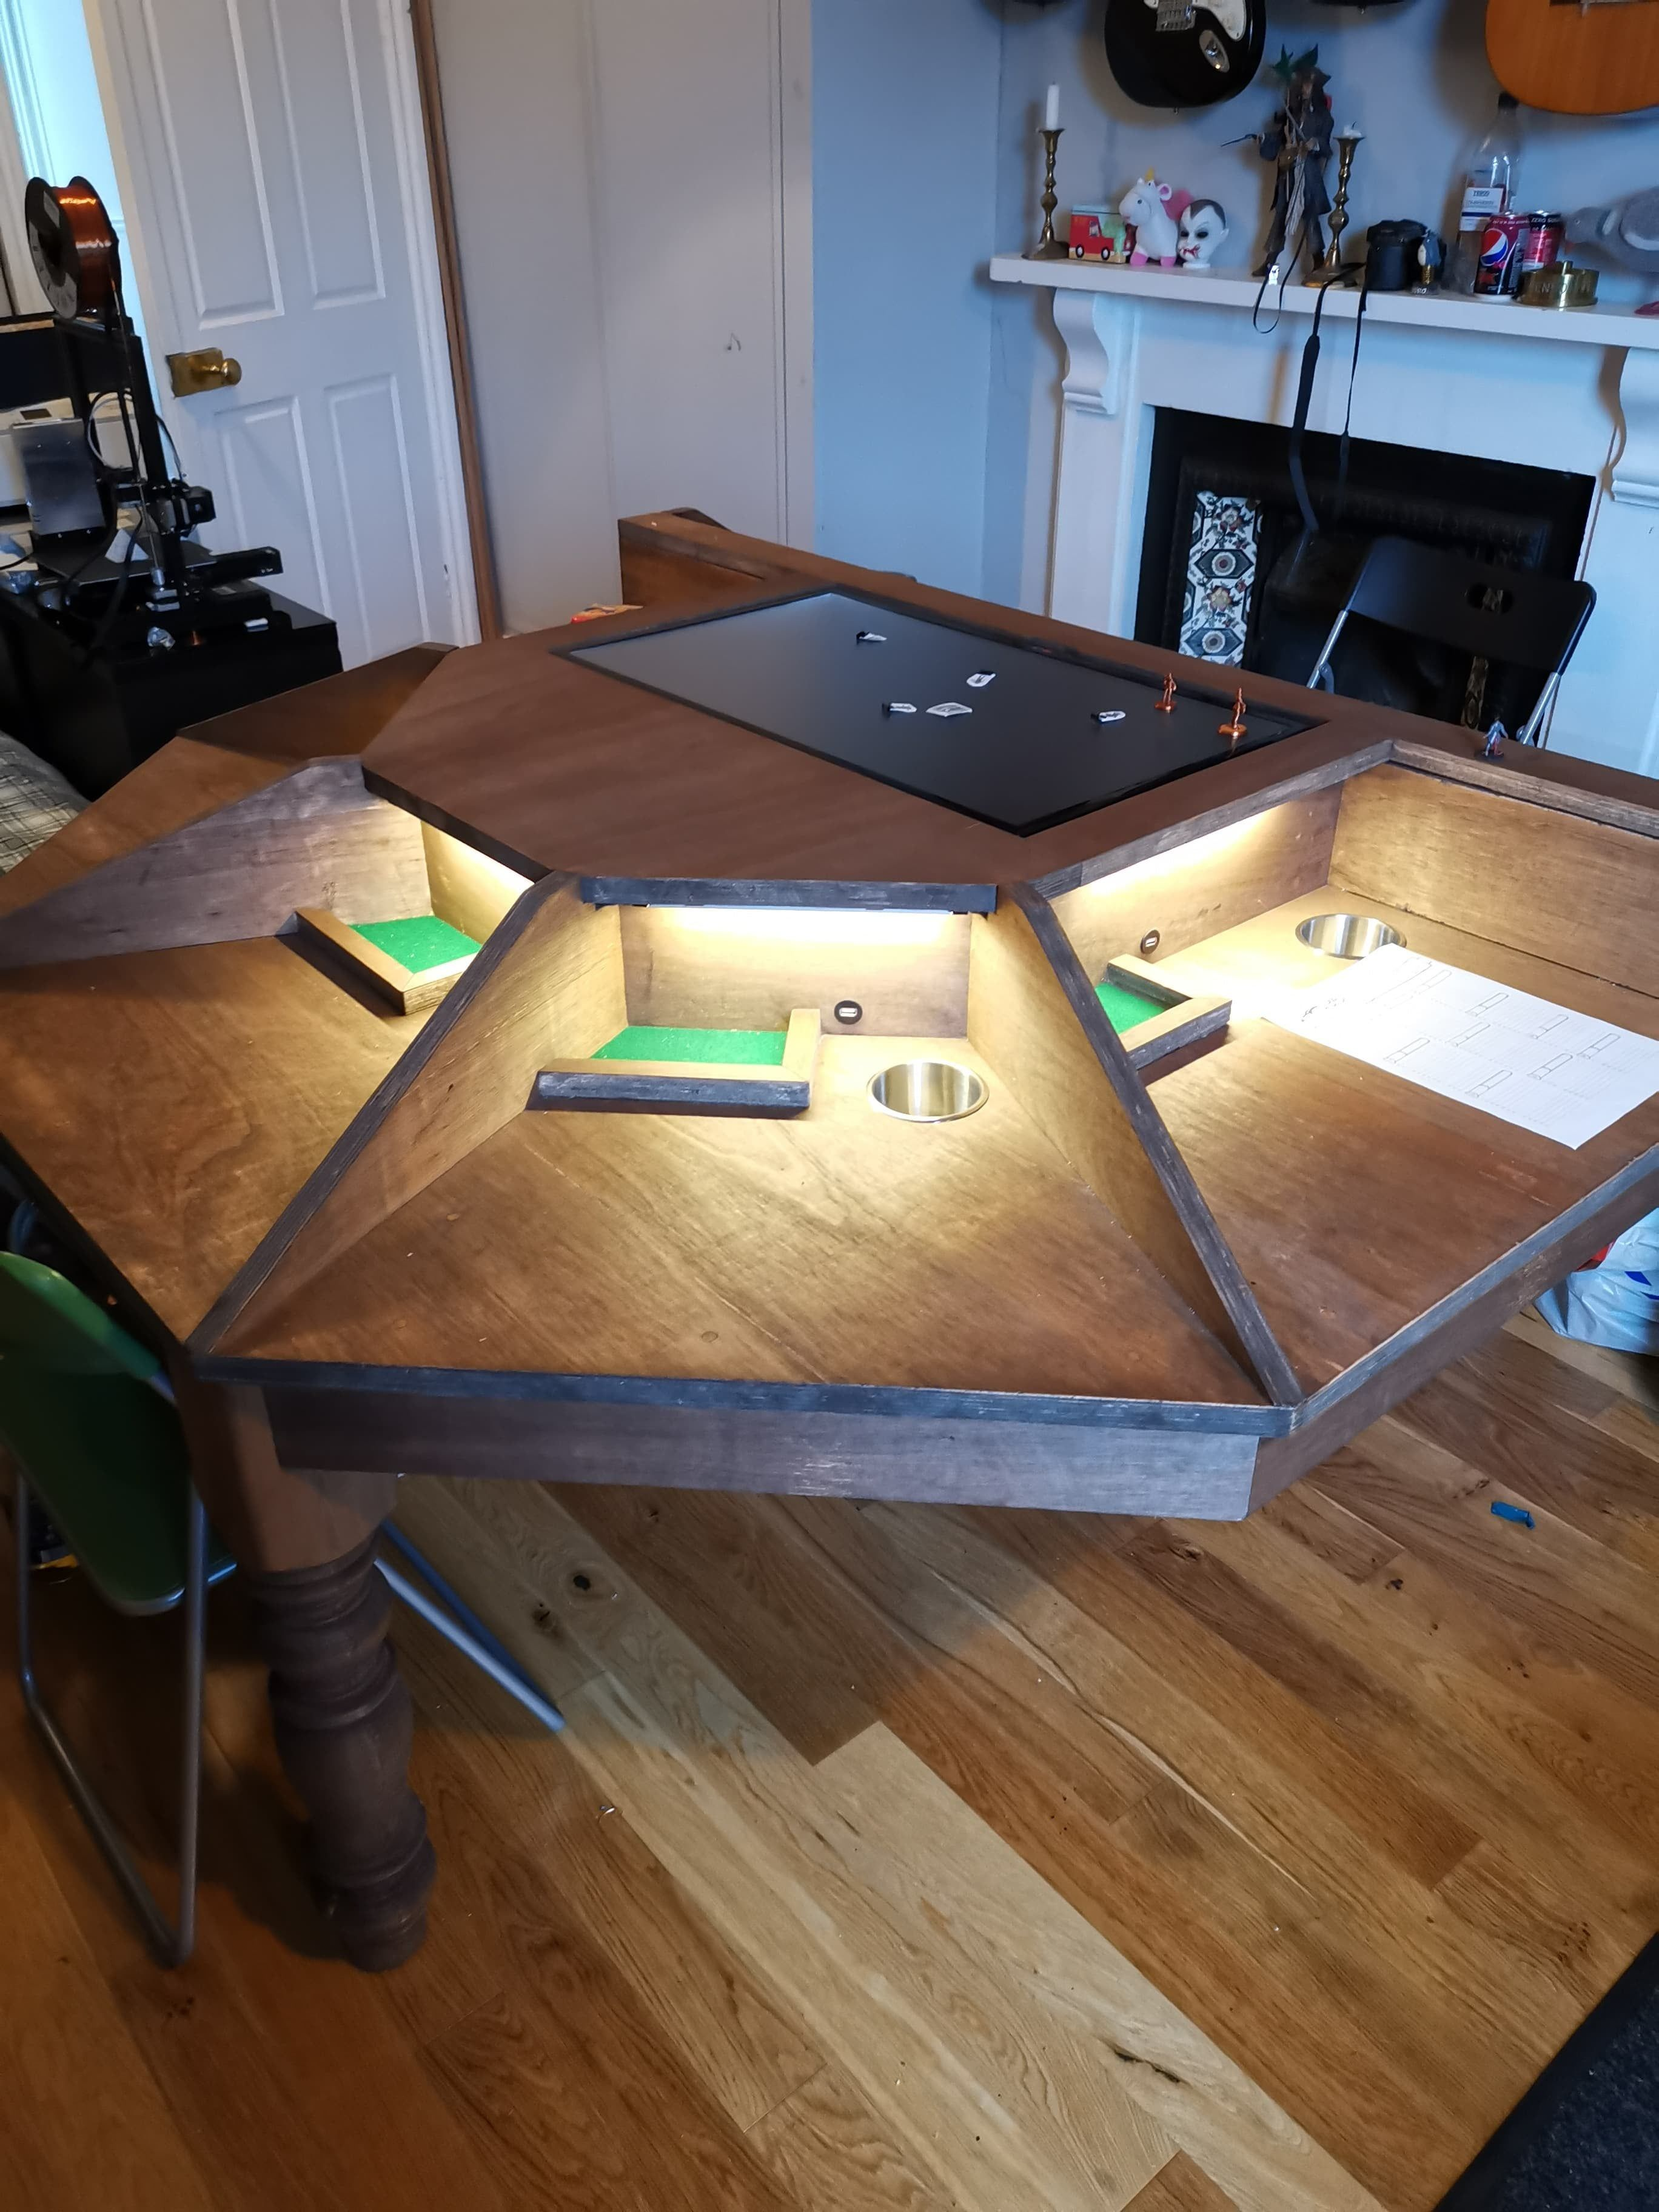 My Dad and I made a DnD table it got out of hand